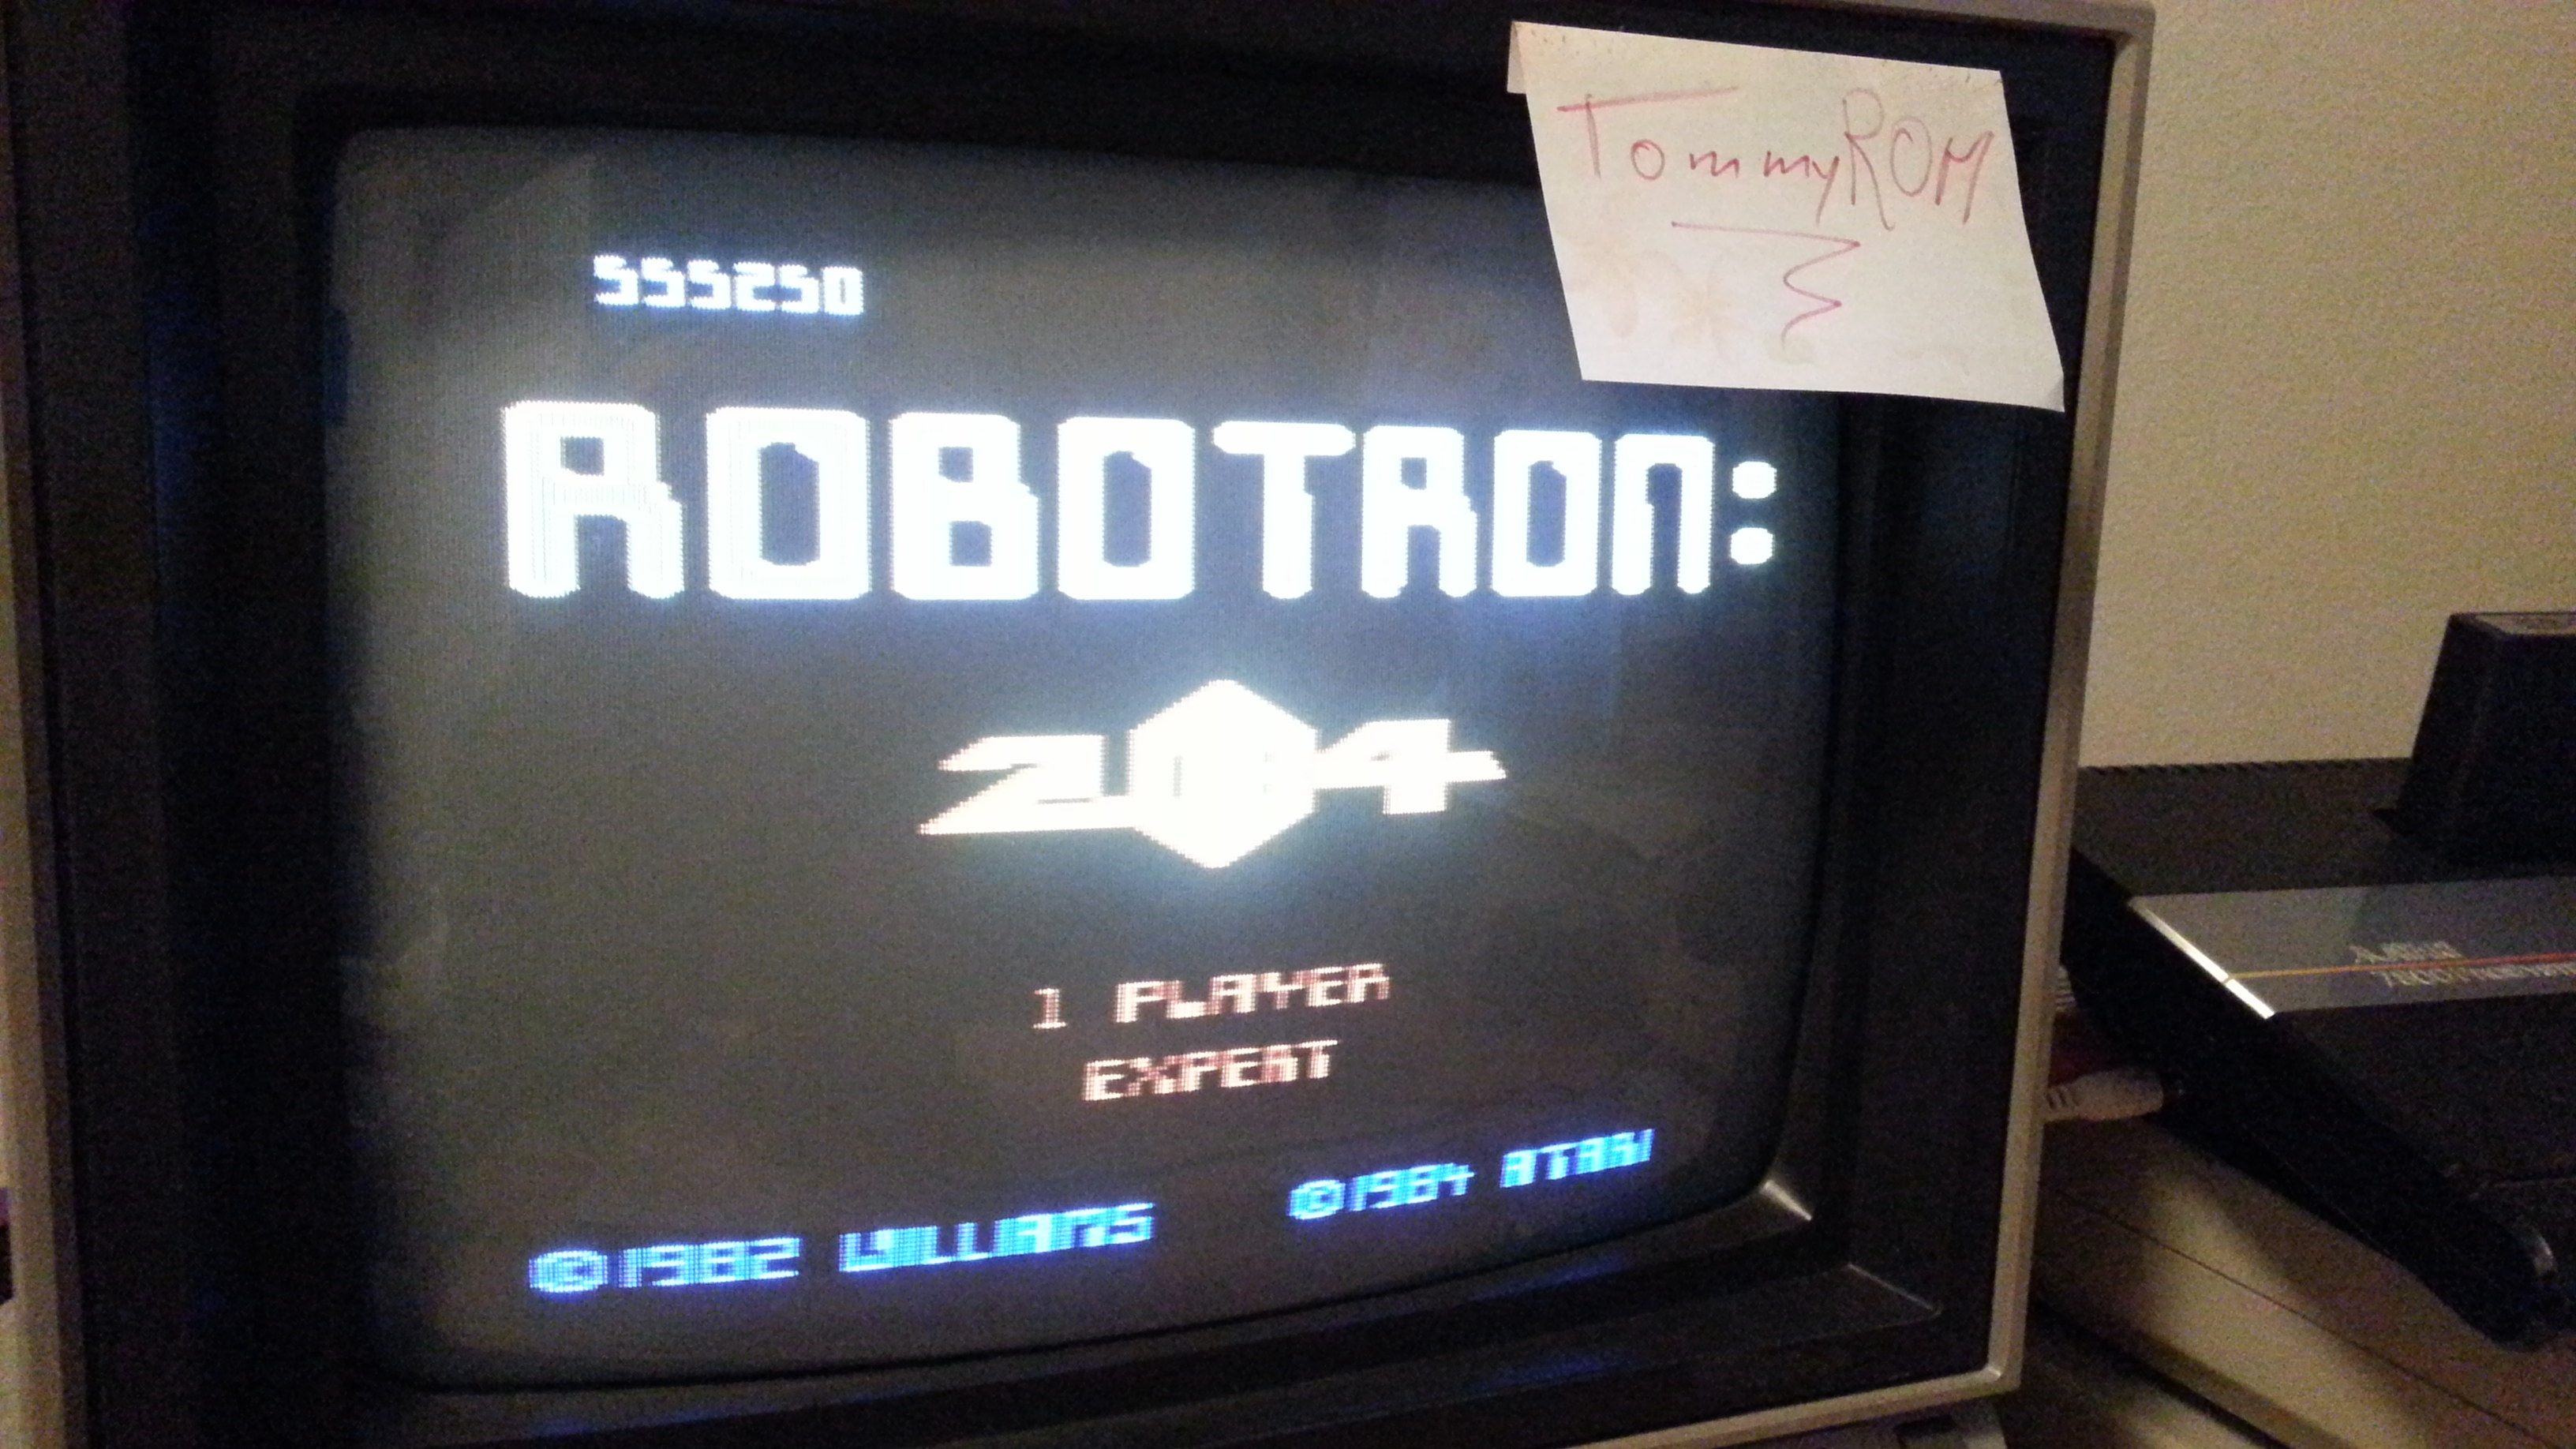 Robotron 2084: Expert 555,250 points